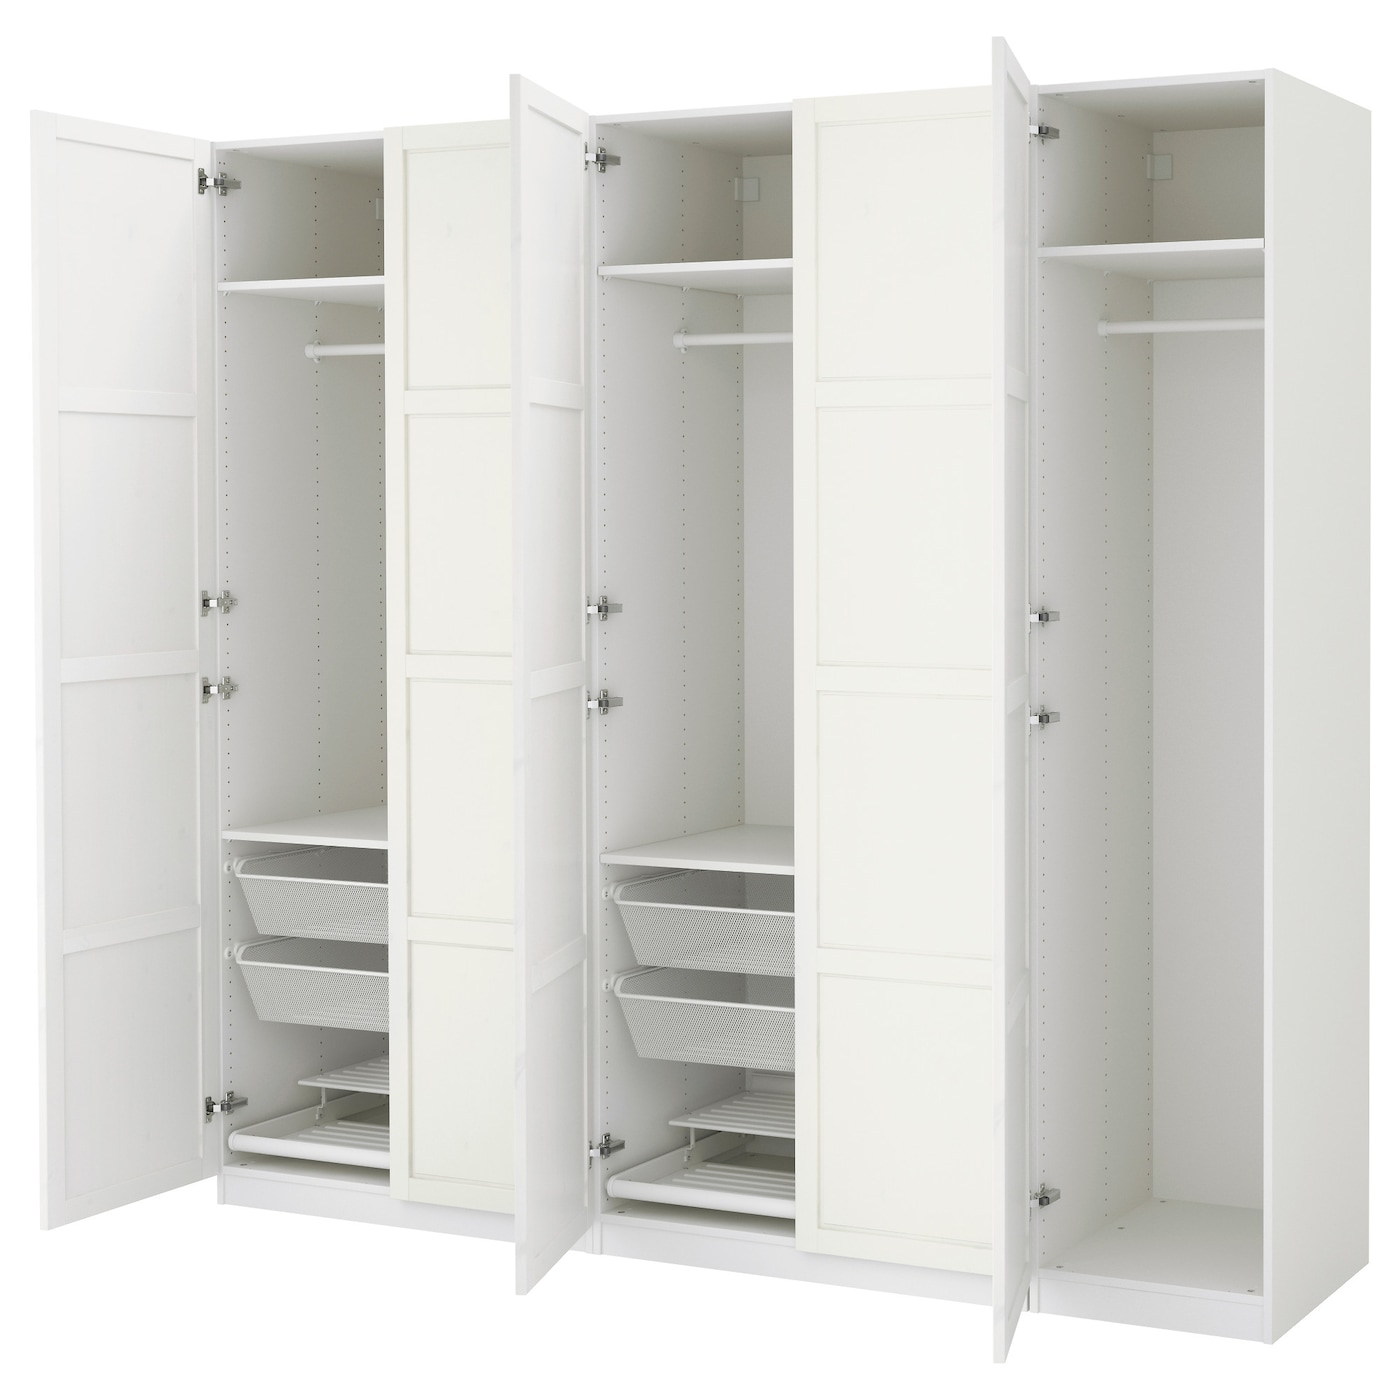 pax armoire penderie blanc hemnes teint blanc 250x60x236. Black Bedroom Furniture Sets. Home Design Ideas